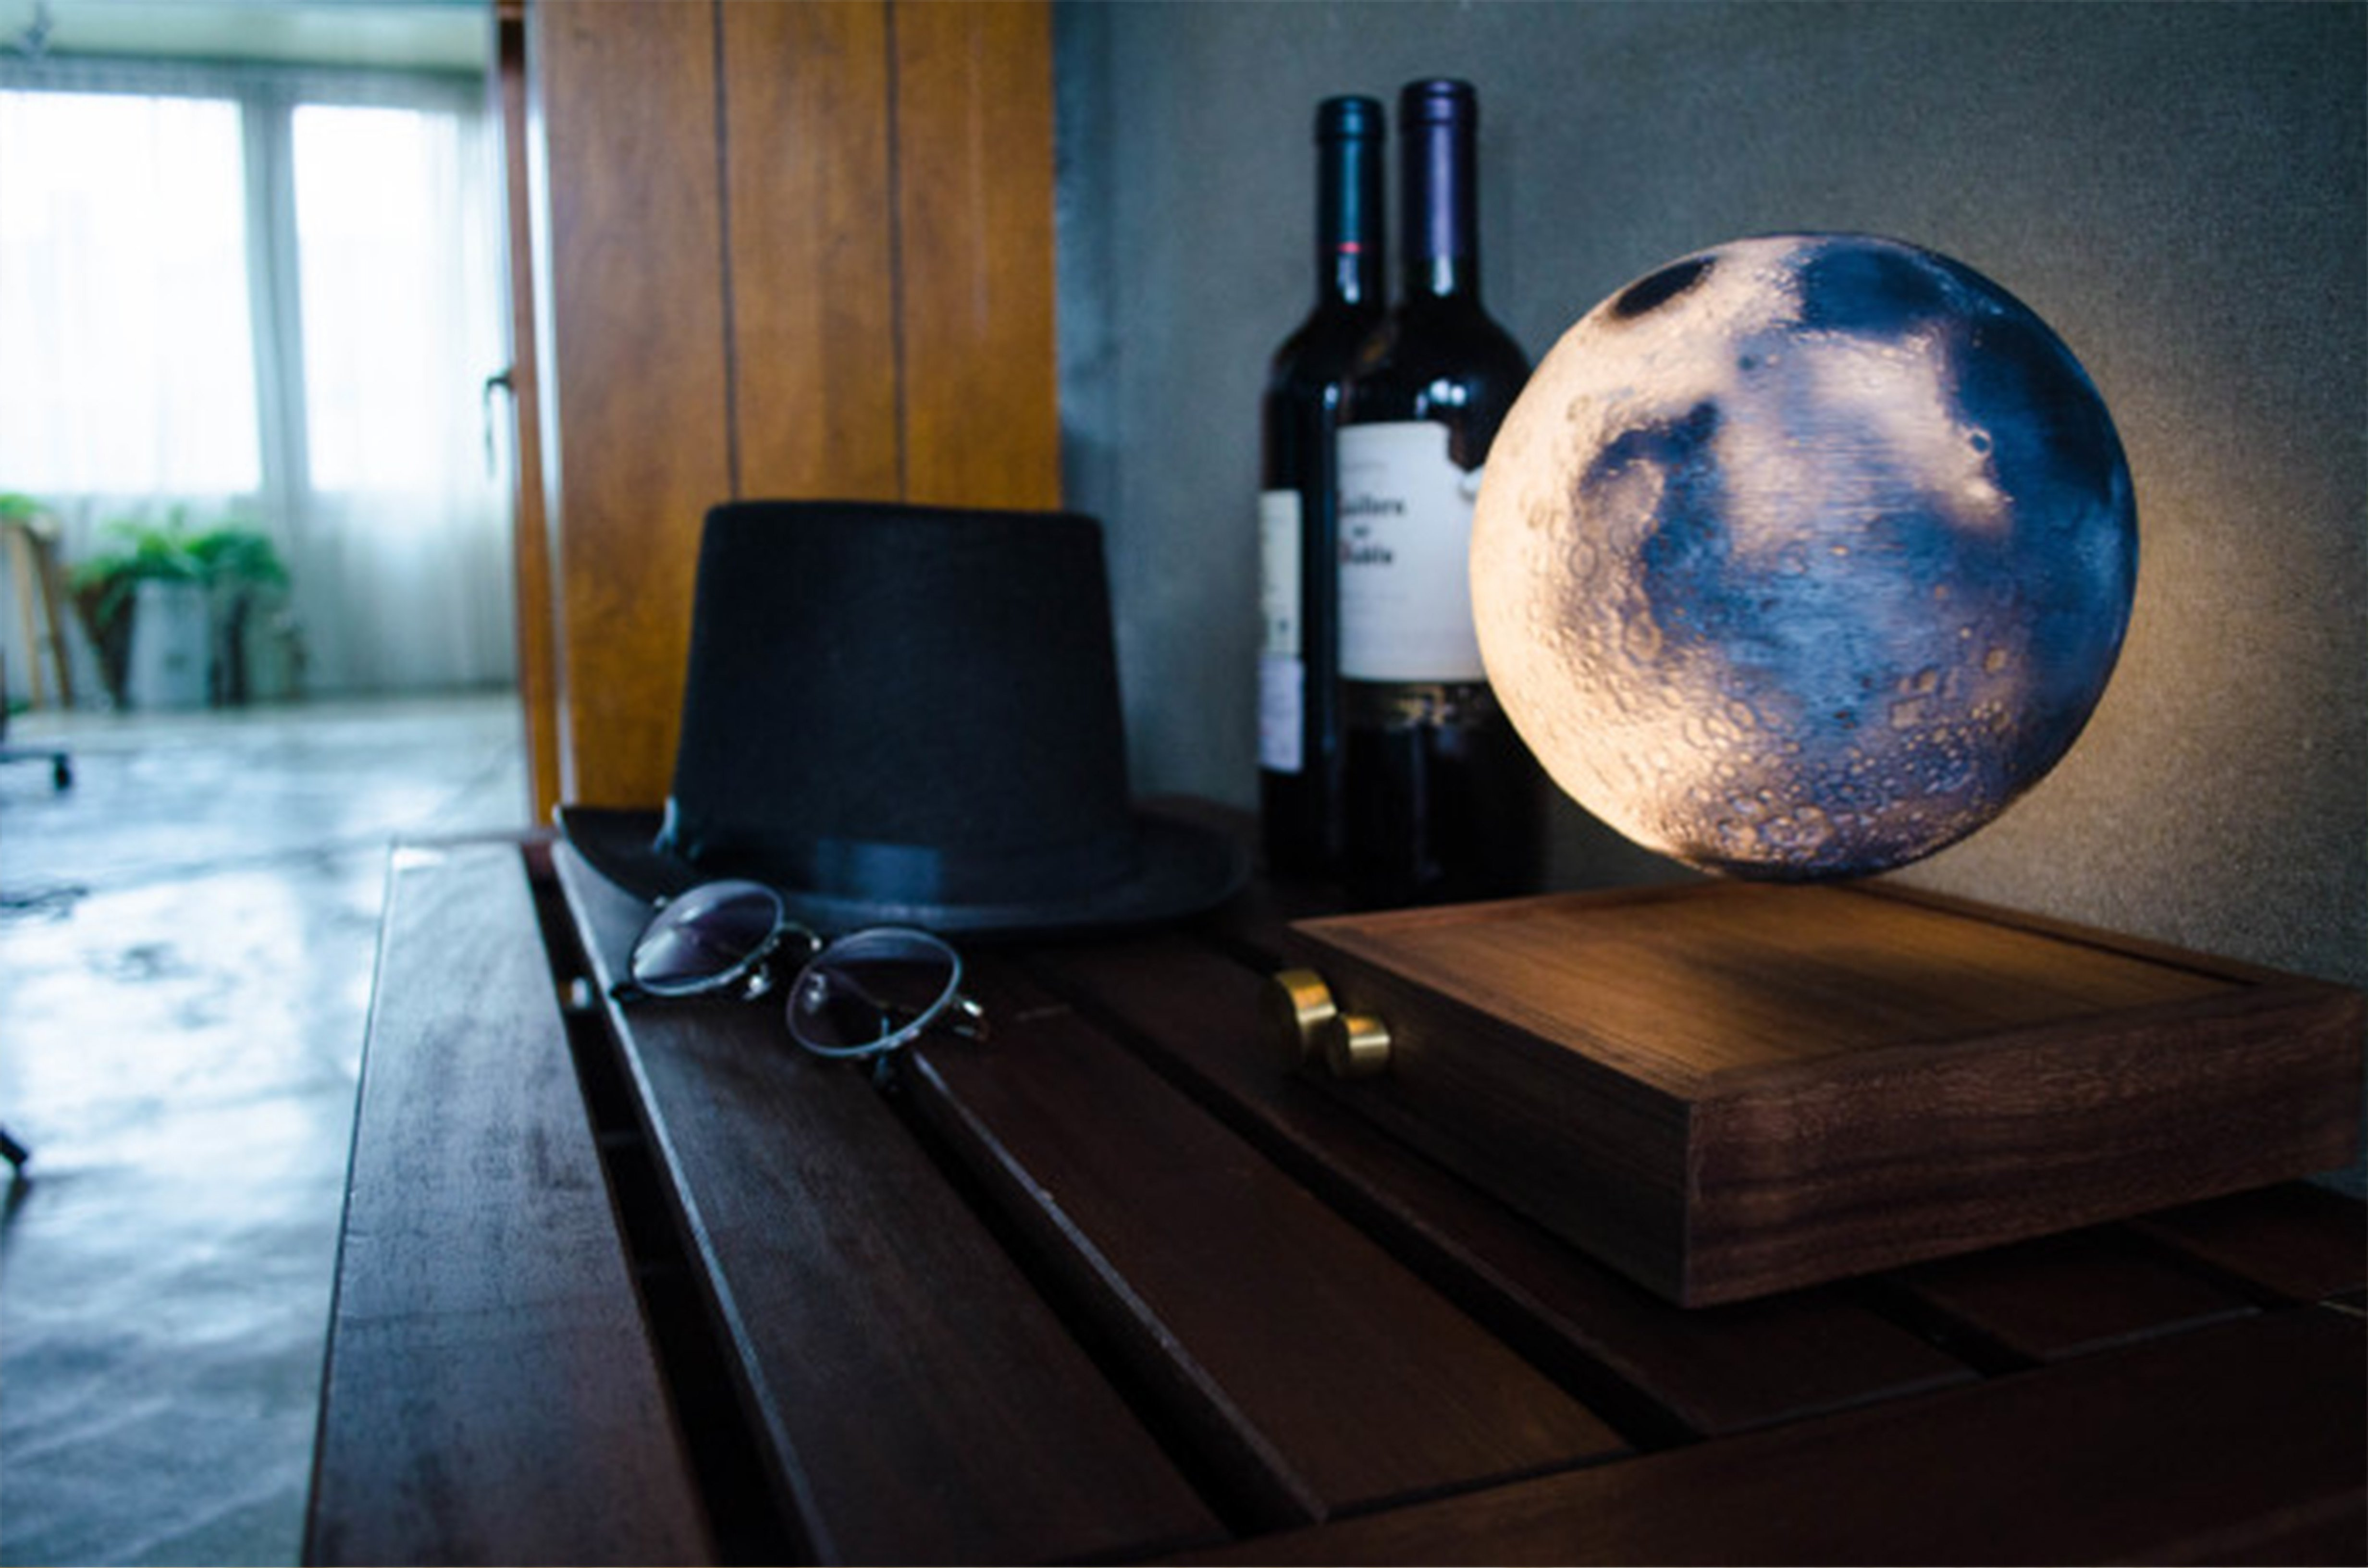 Chrismas Best Gift! 3D Modeling Ultimate Floating Moonlamp!